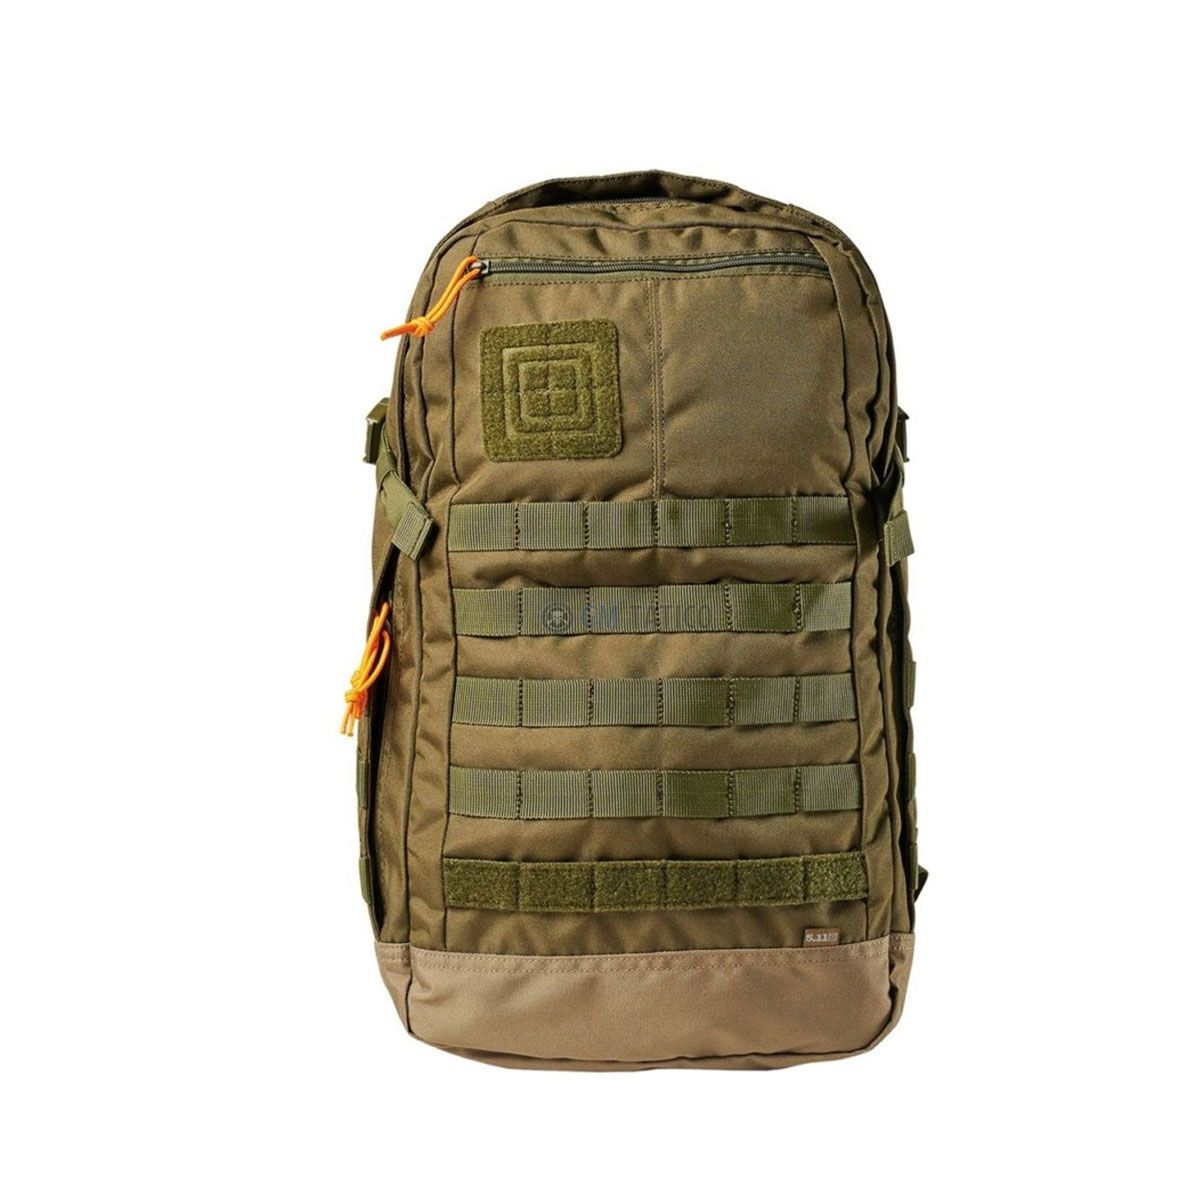 Mochila Administrativa 5.11 Tactical Rapid Origin Pack Tac OD